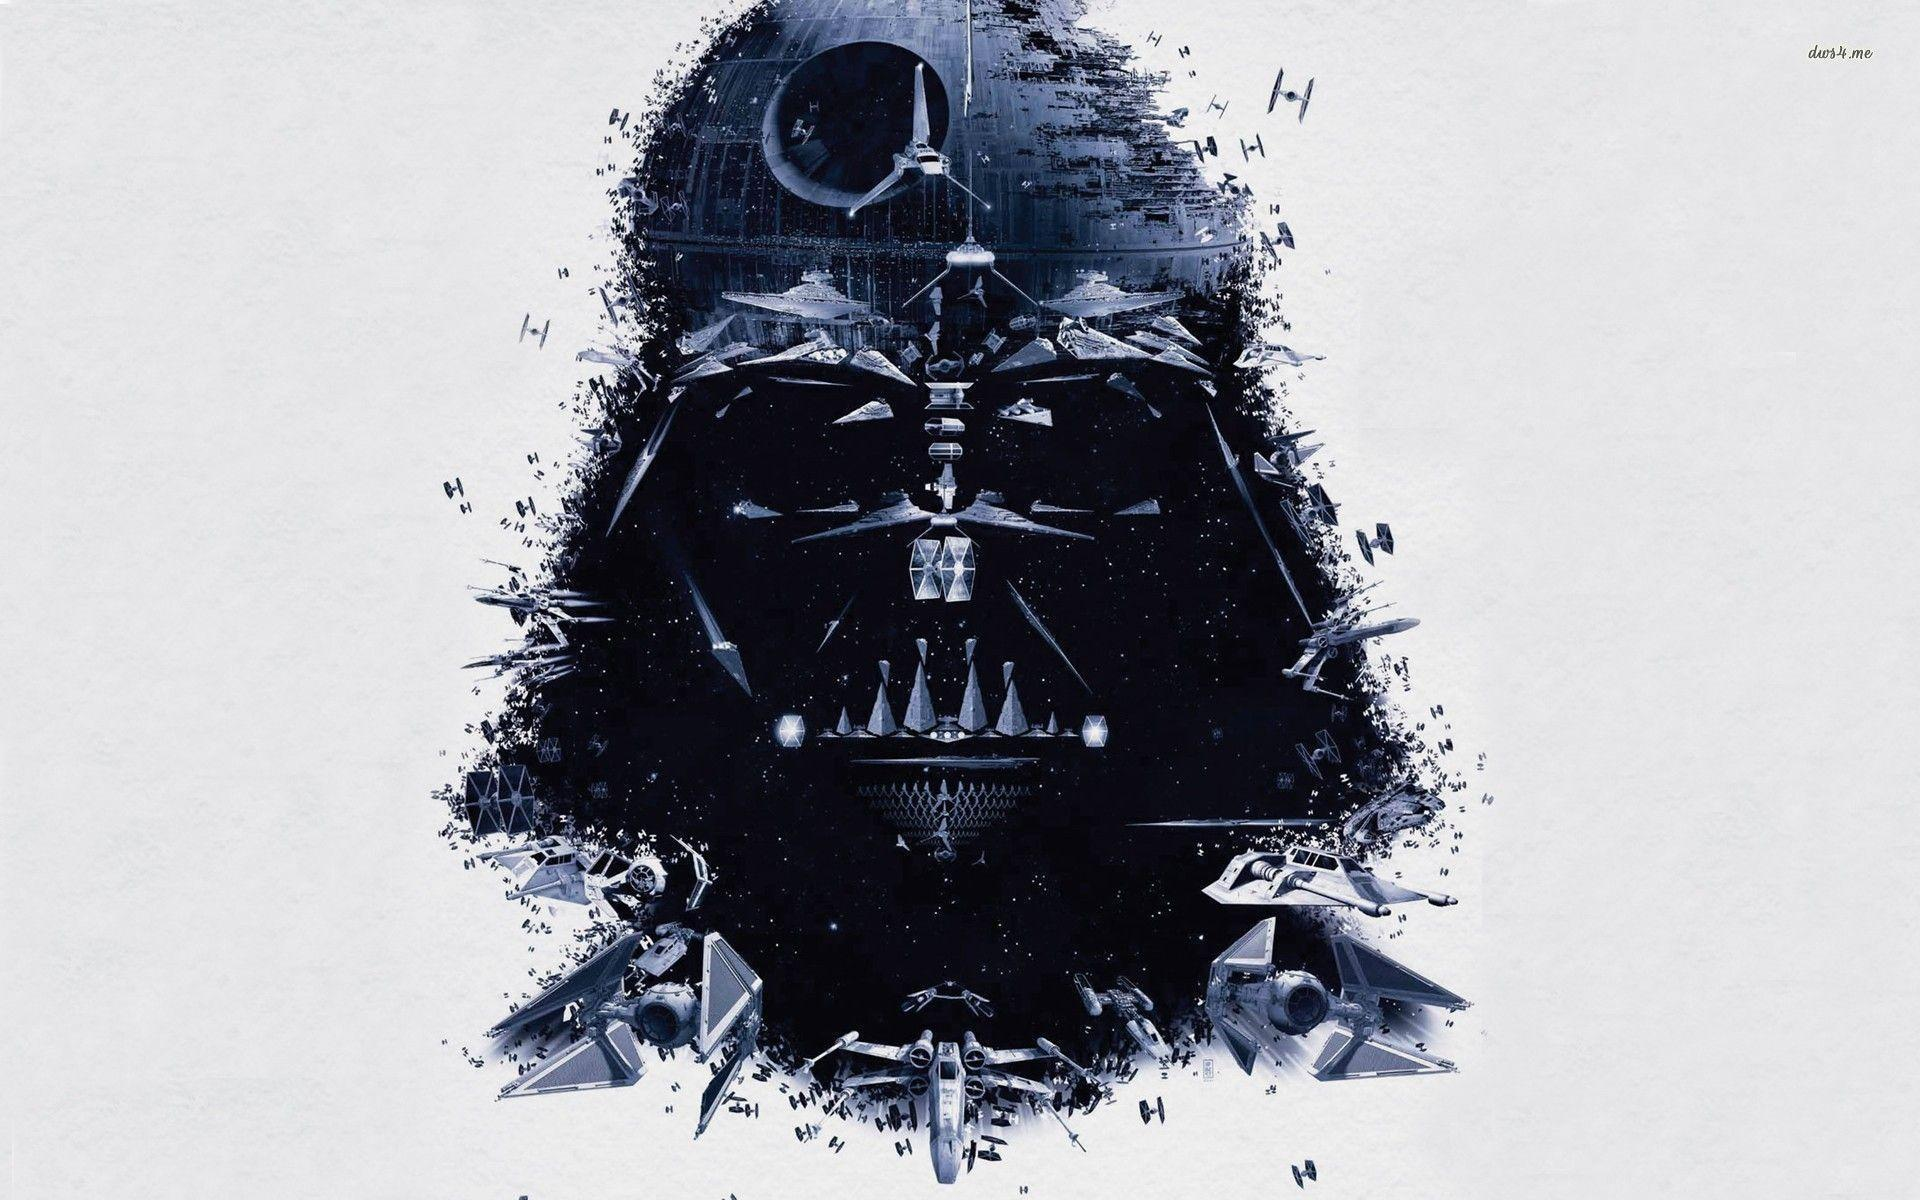 Star Wars Darth Vader Wallpapers Wallpaper Cave